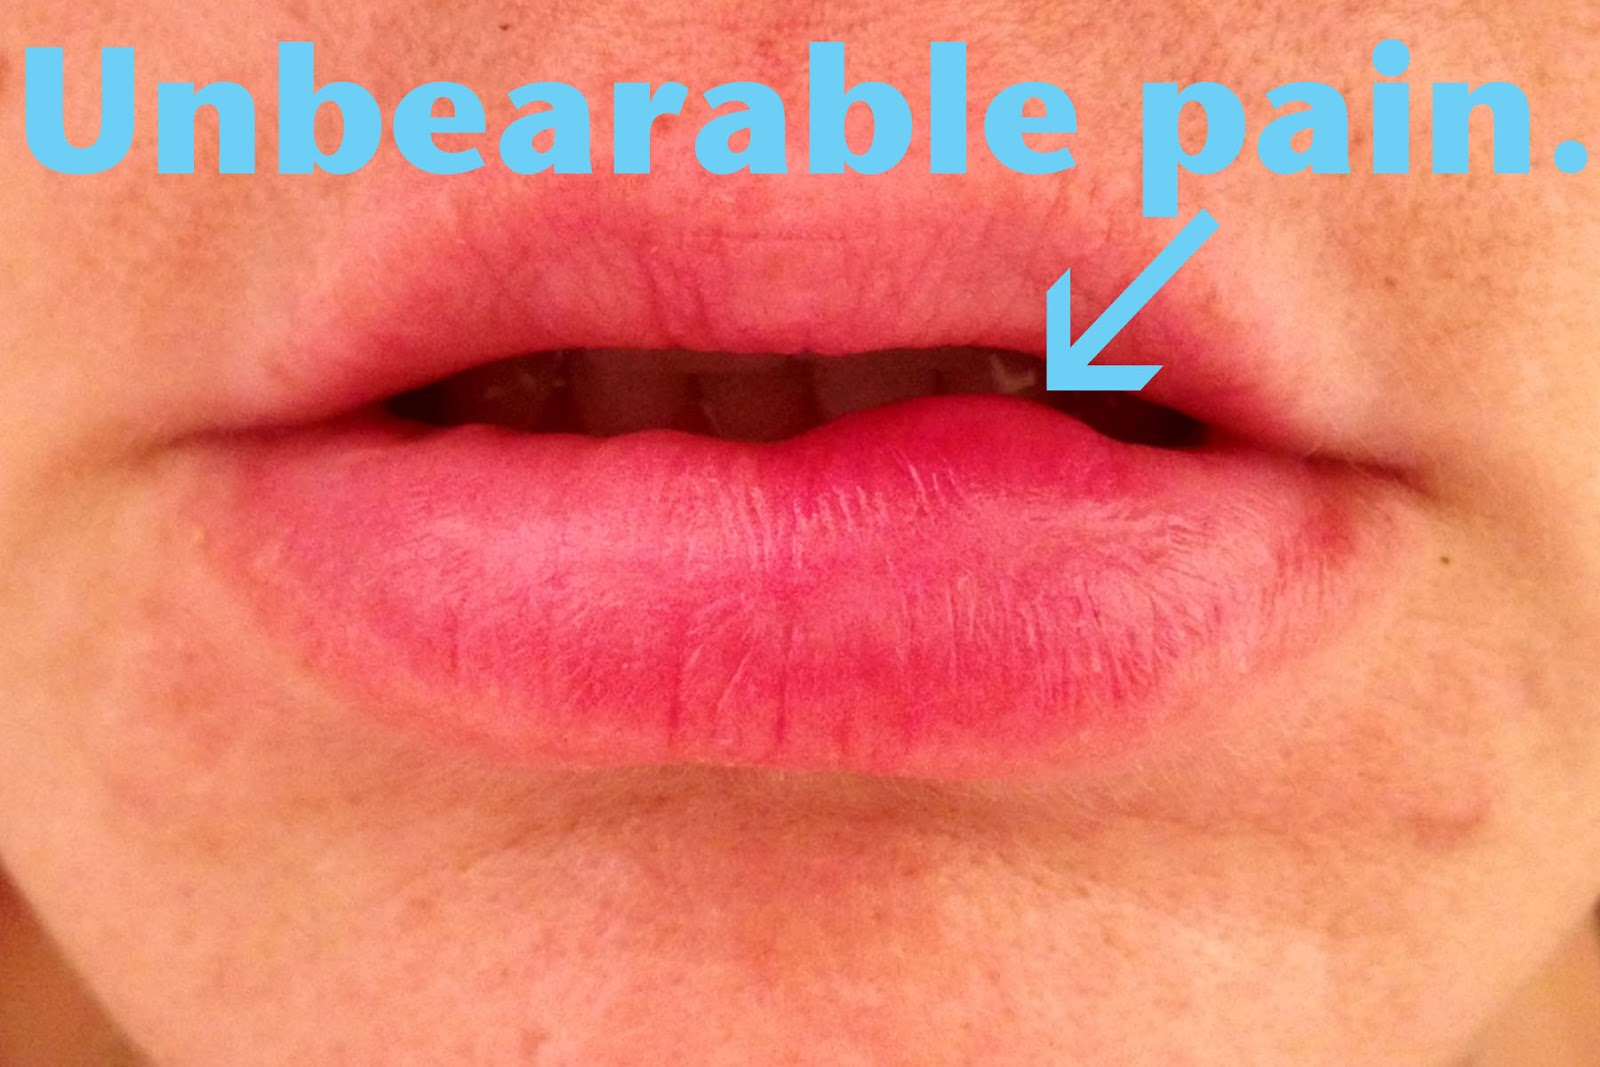 how to get rid of bumps on tongue that hurt